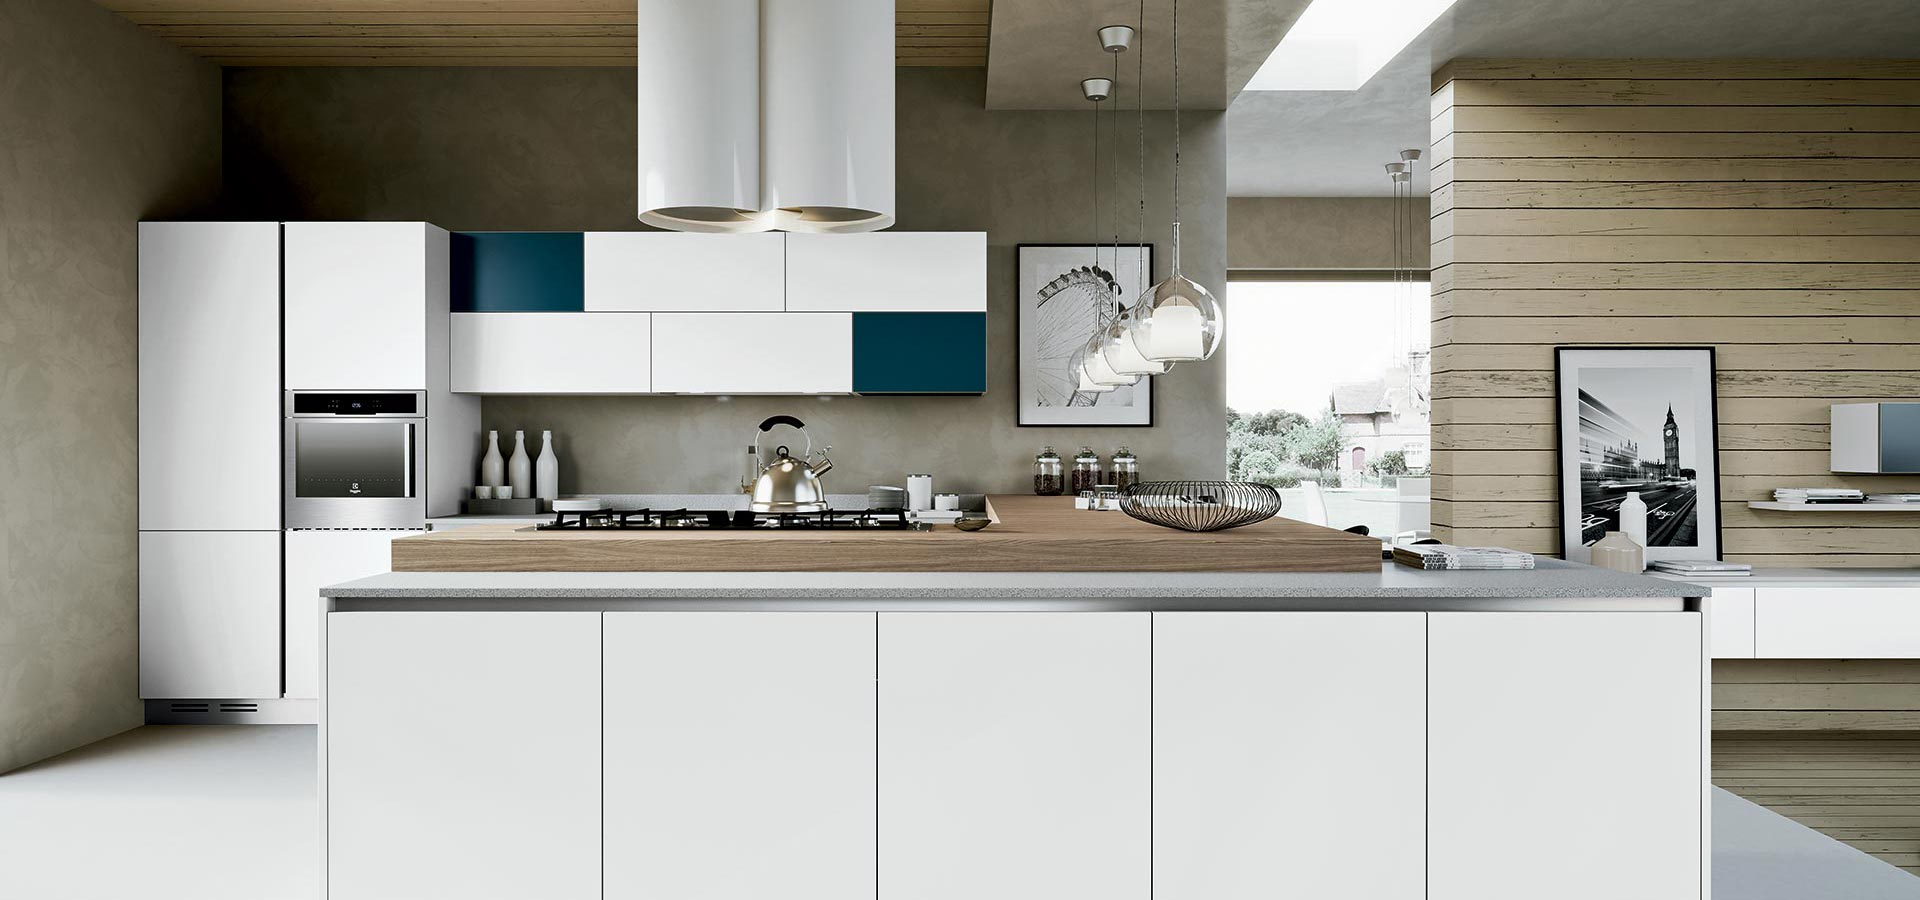 combine white units with contrasting and varied work surfaces for stylish results.